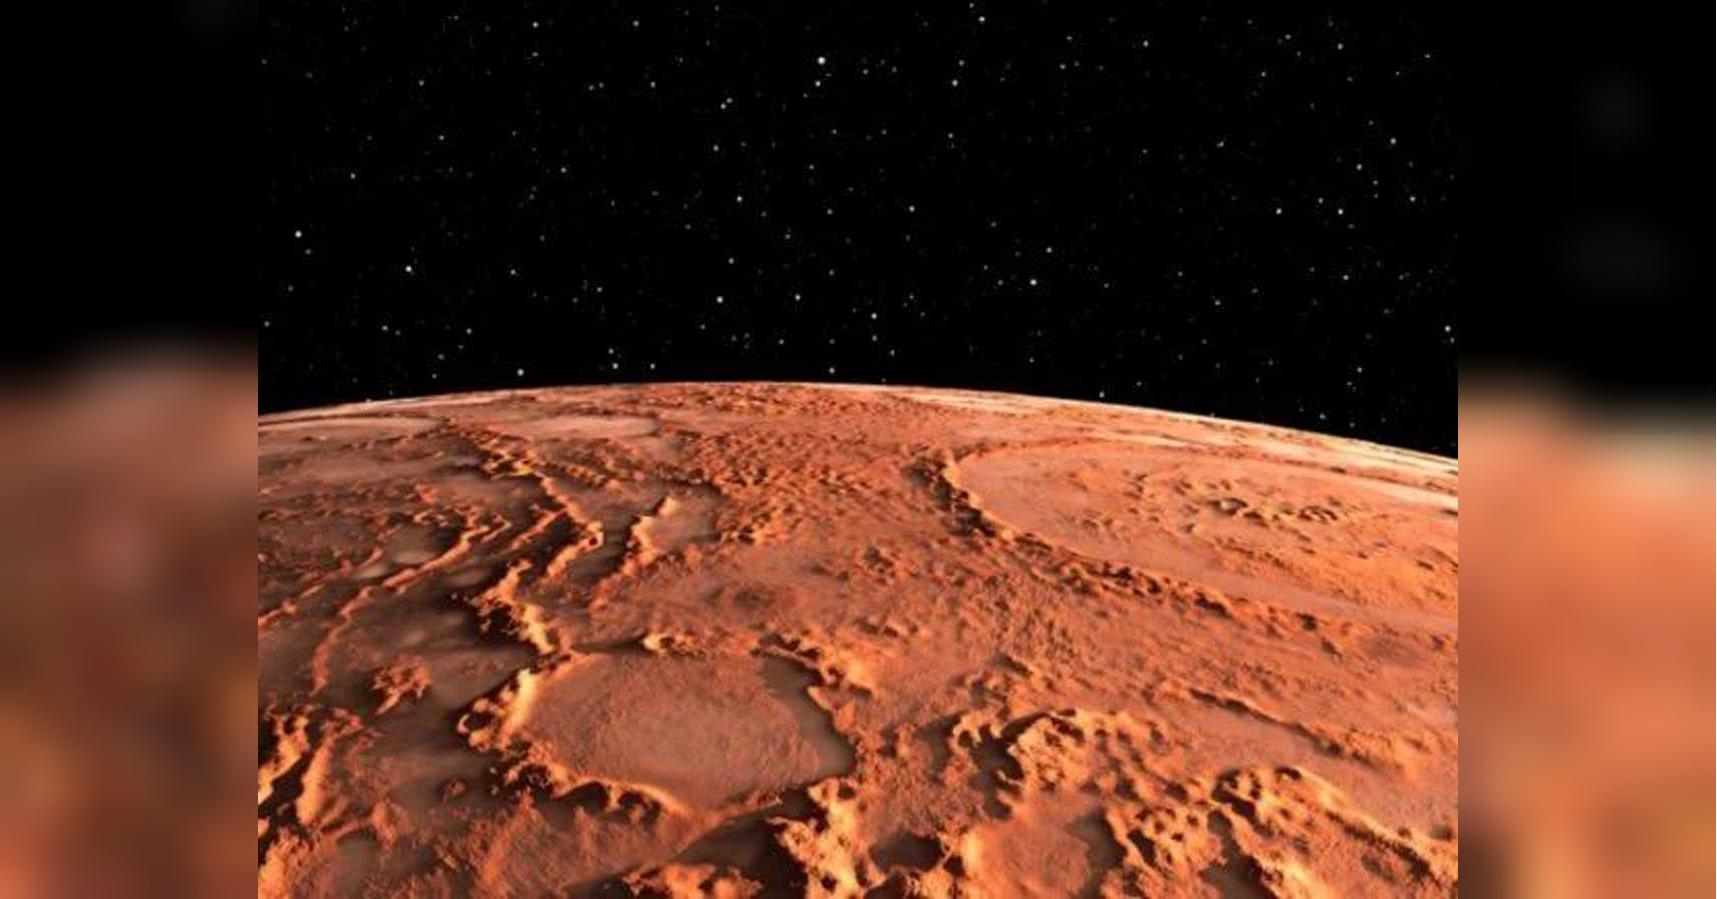 Scientists Claim Discovery of Multiple Liquid Water Lakes on Mars